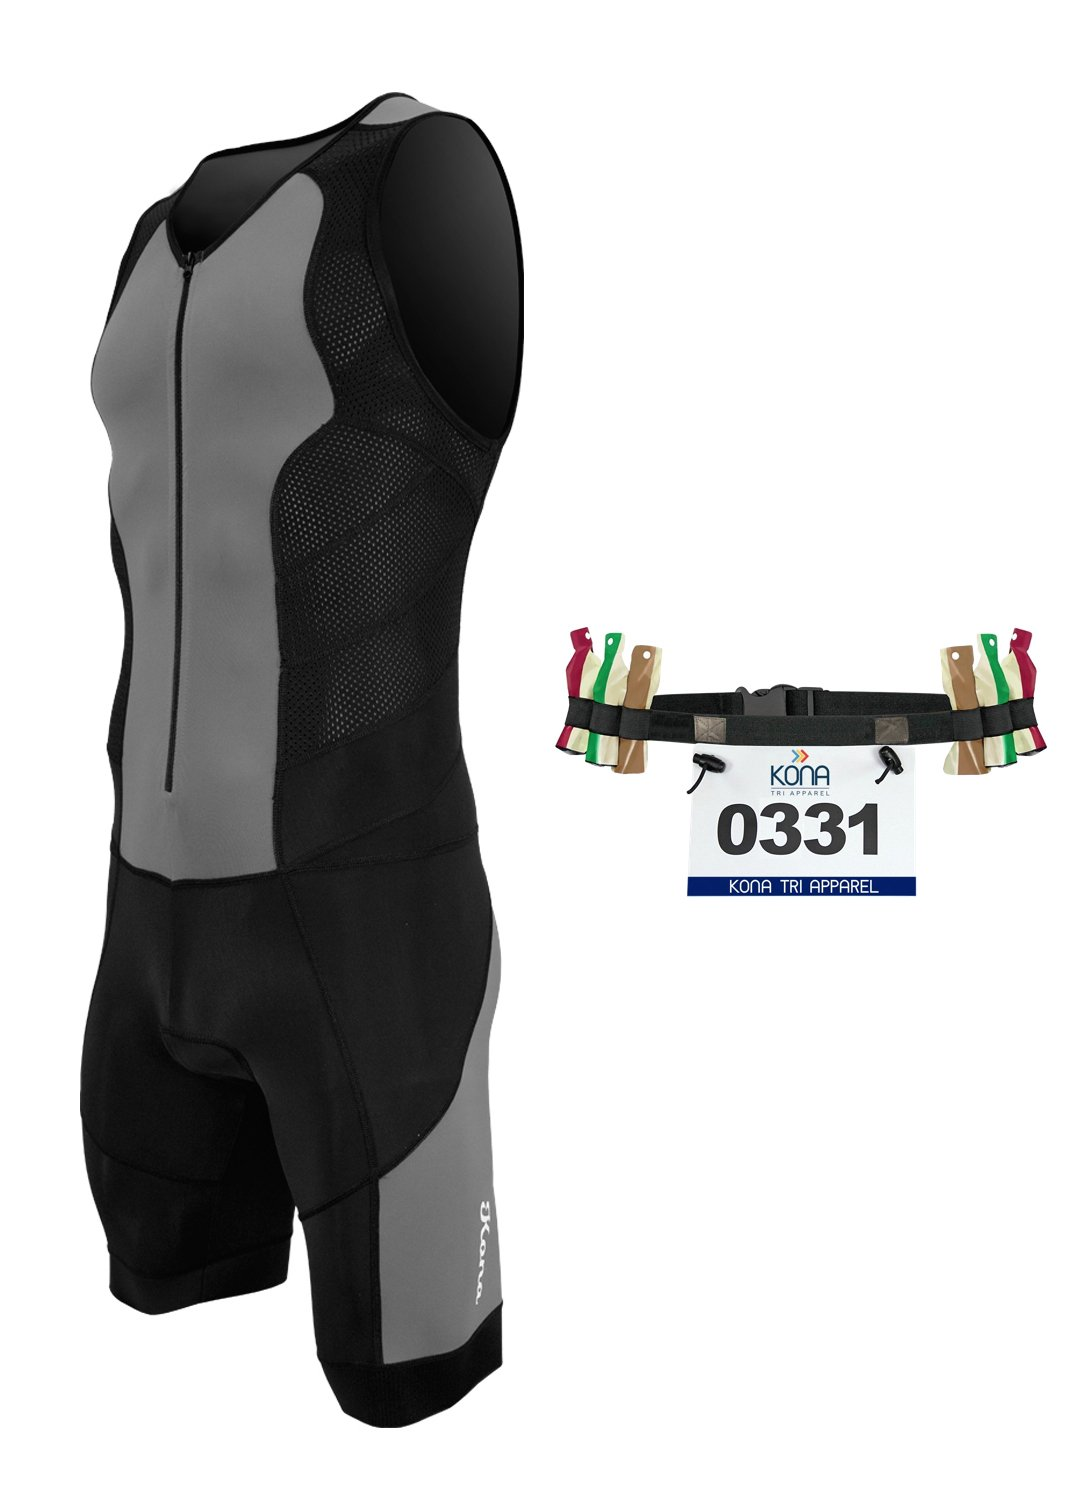 Kona II Men's Triathlon Suit - Sleeveless Speedsuit Skinsuit Trisuit with Storage Pocket and Bonus Race Bib Belt (Charcoal/Black, Small)